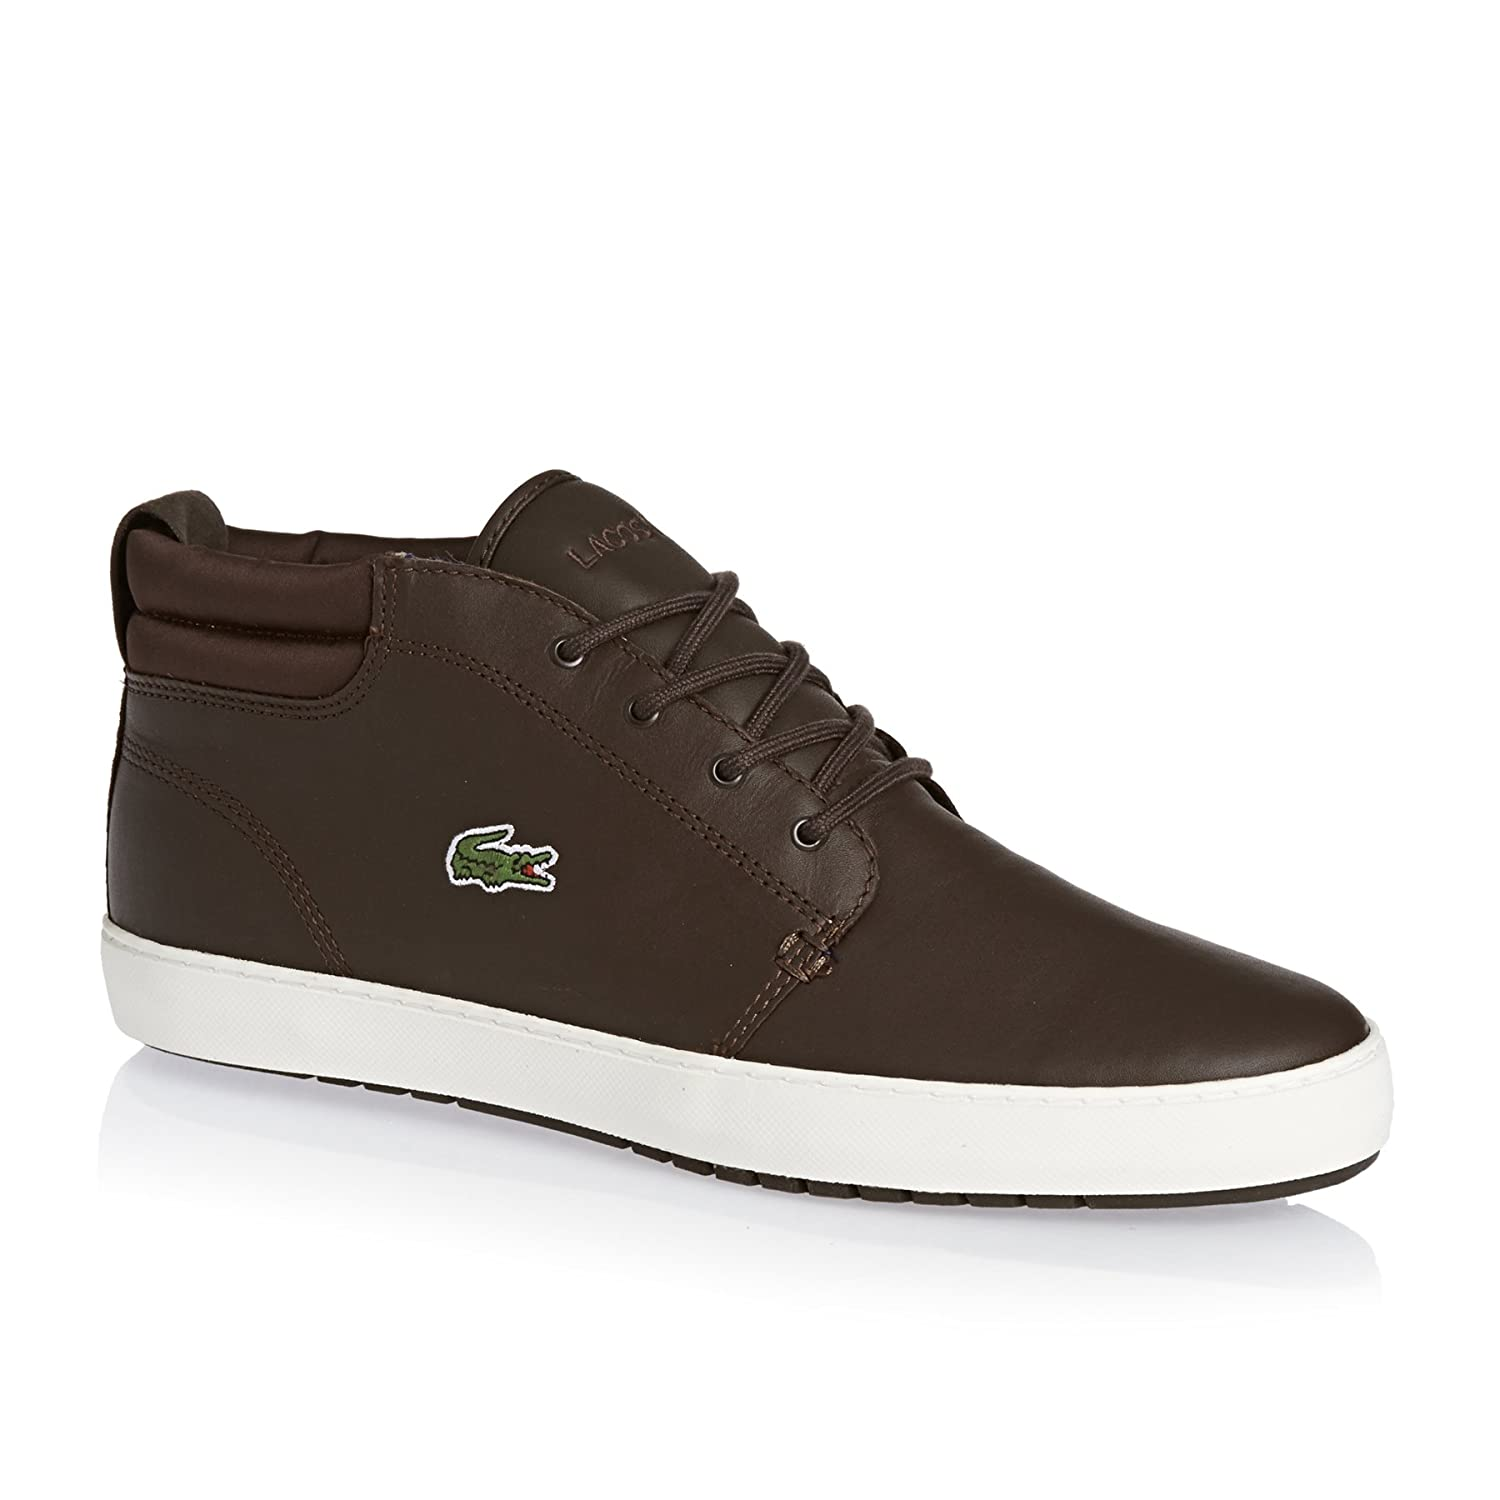 4c228f088 Lacoste Mens Dark Brown Ampthill Terra 316 1 Trainers  Amazon.co.uk  Shoes    Bags